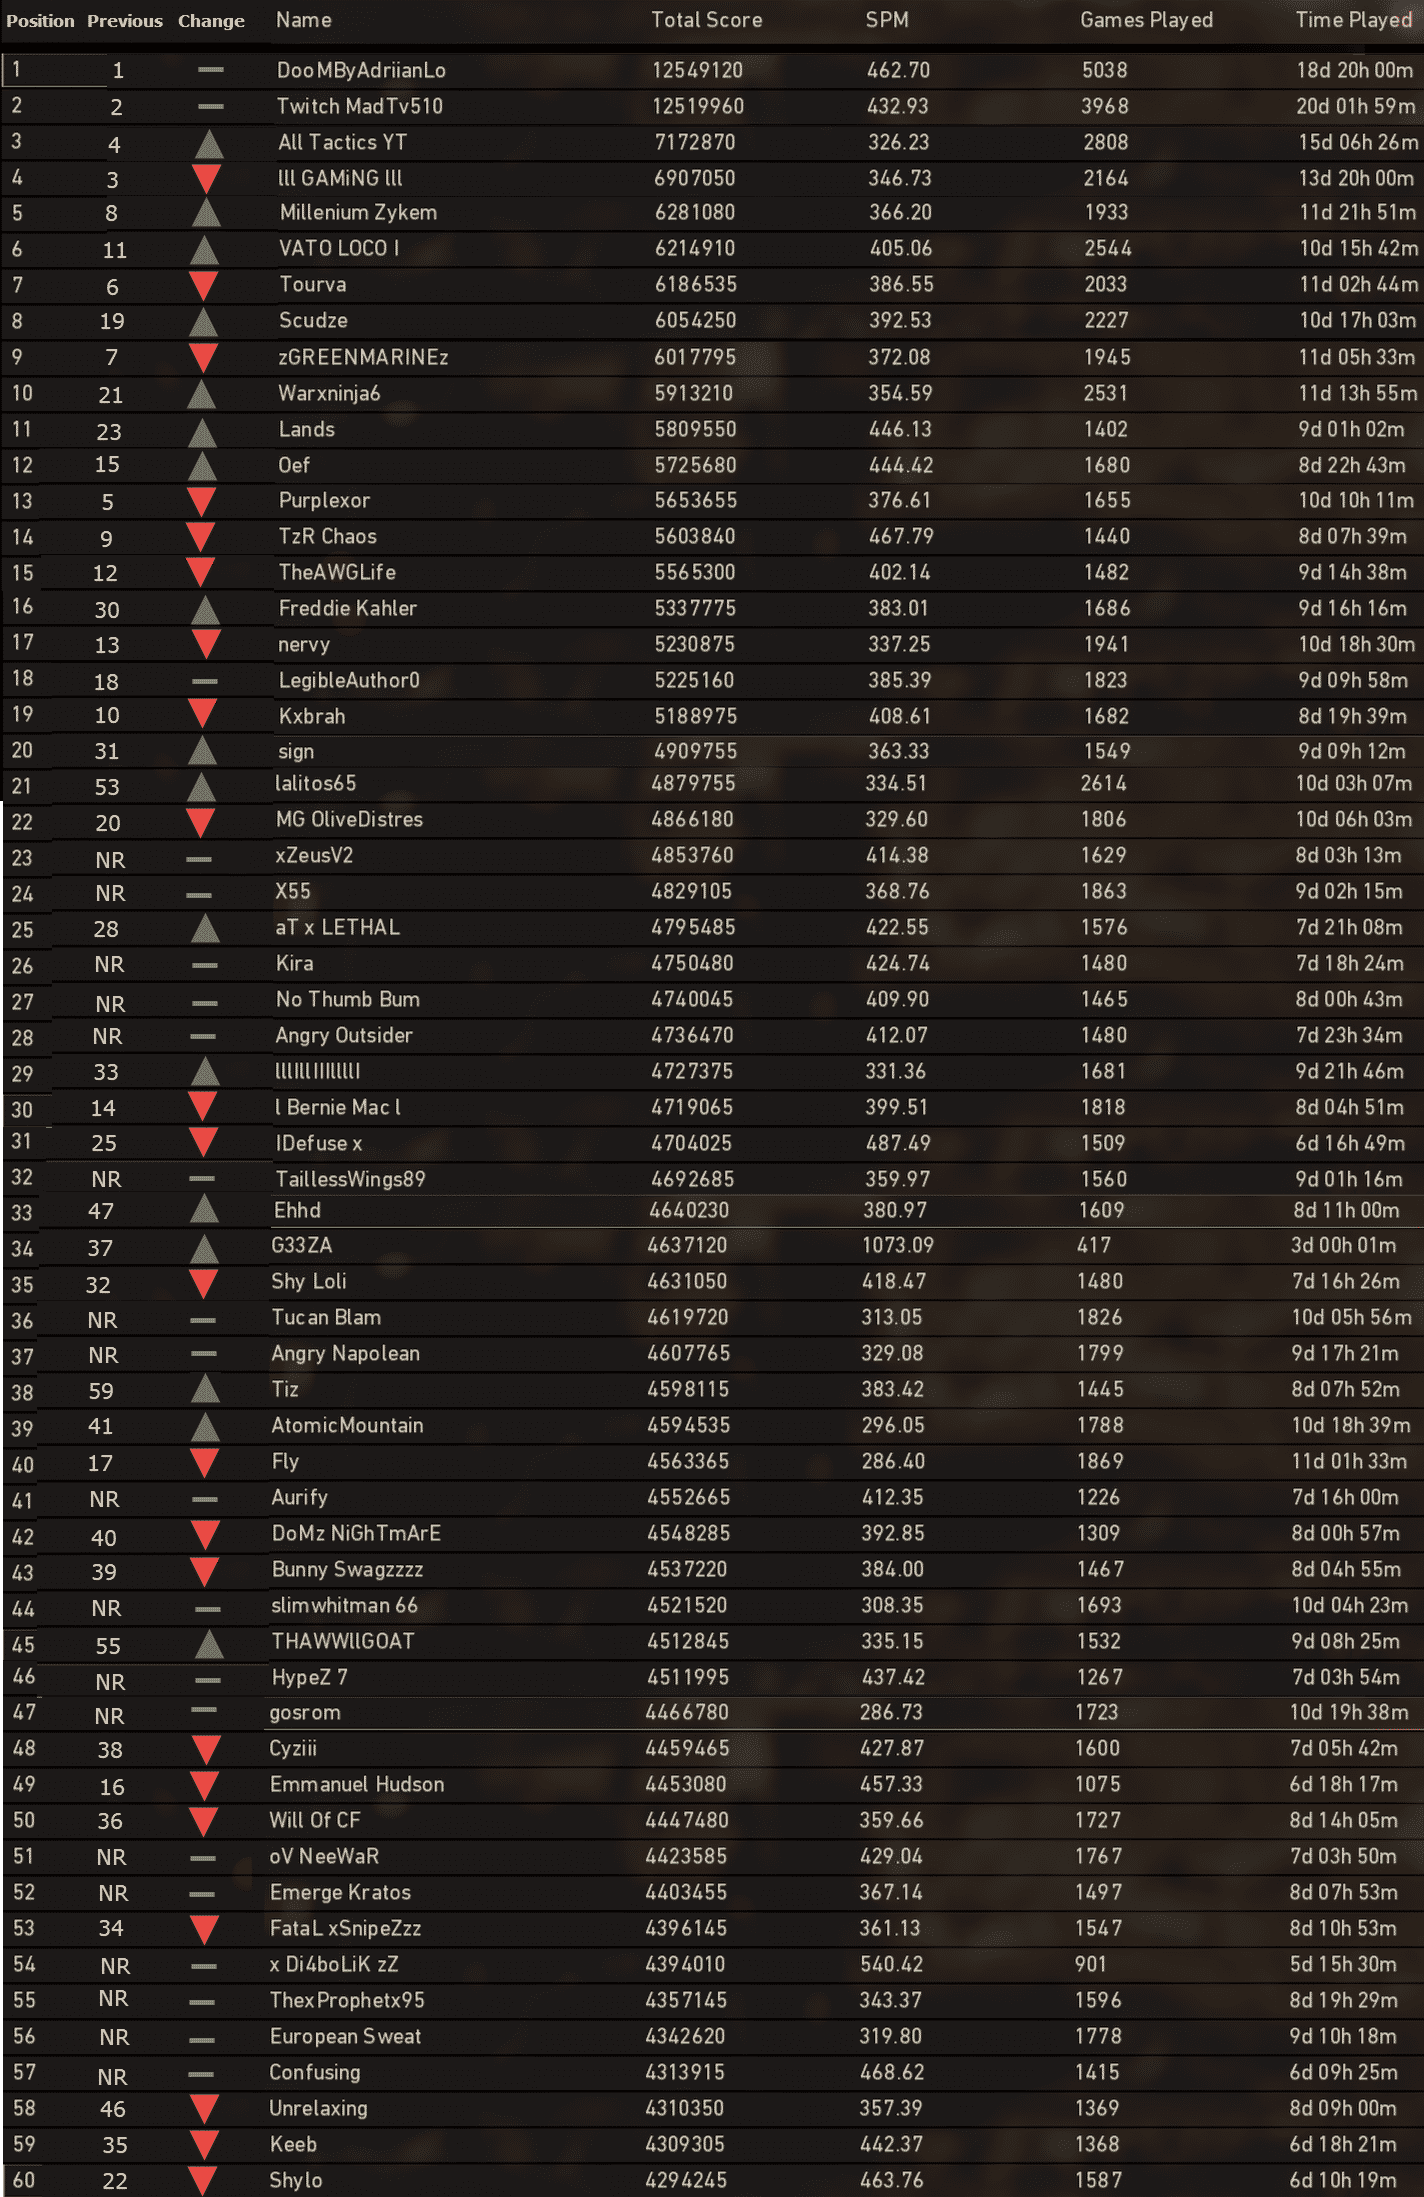 Call of Duty WWII Leaderboards Week 2 Stats